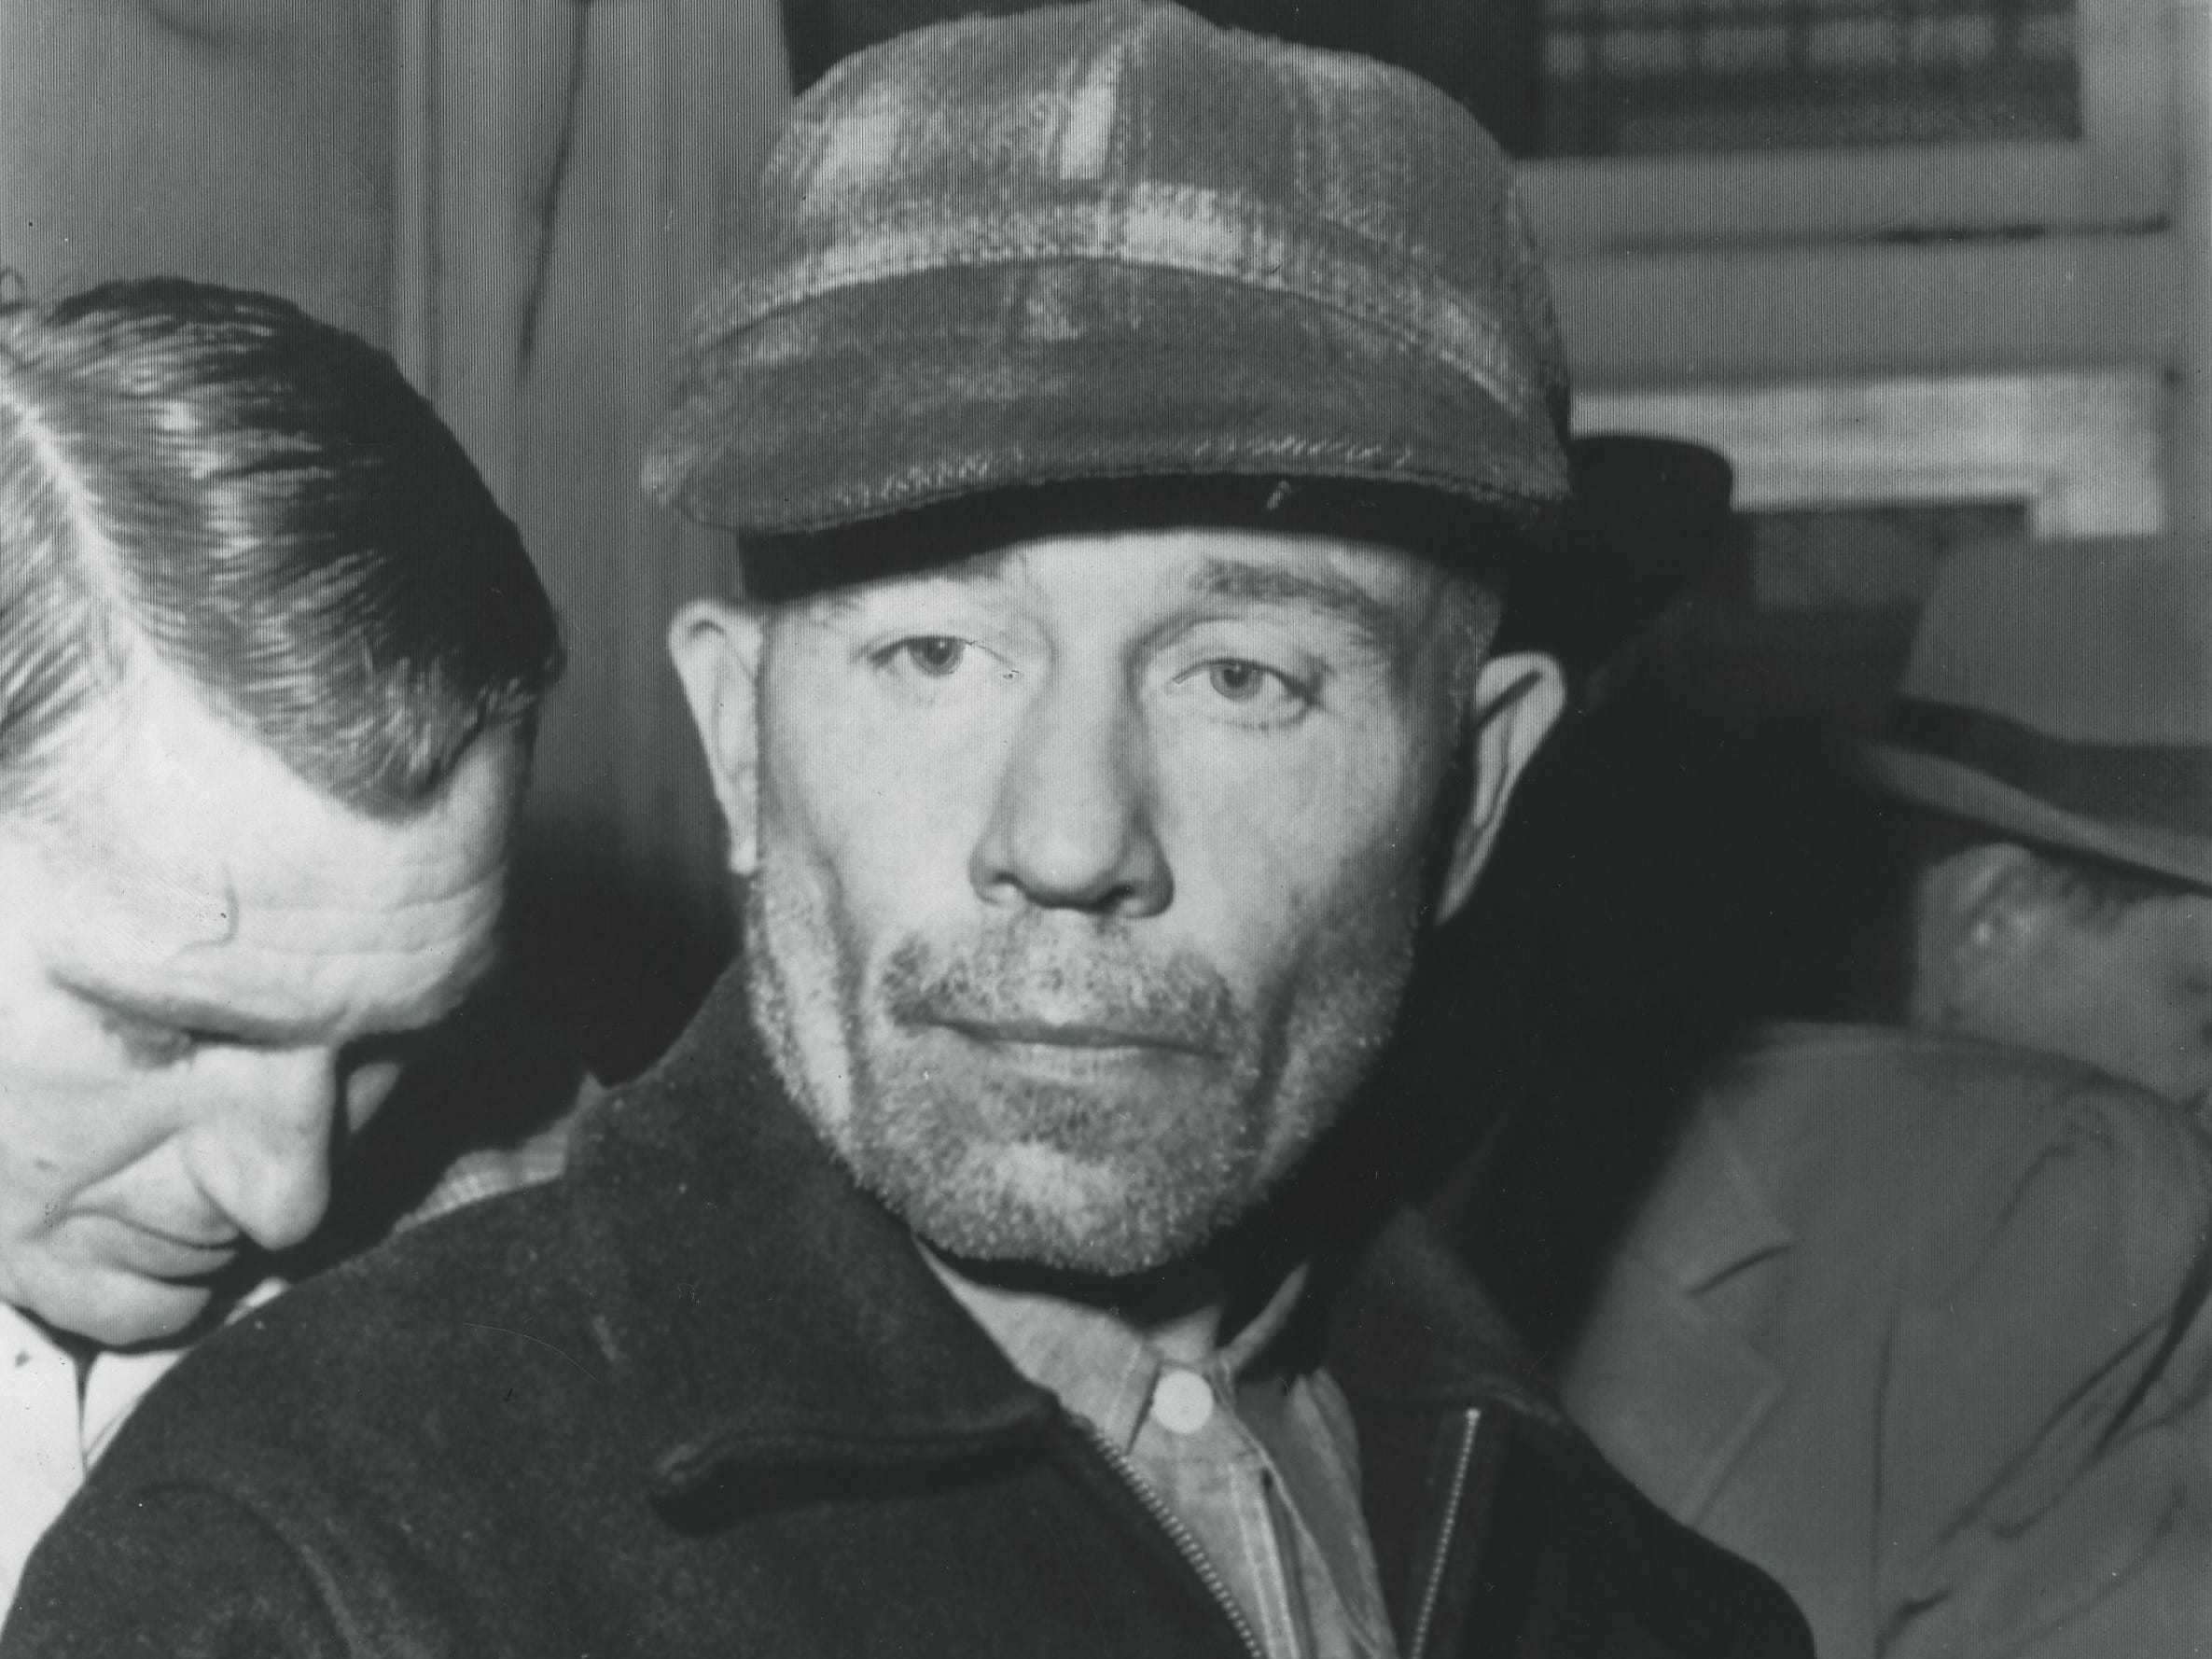 Ed Gein following his arrest in 1957.